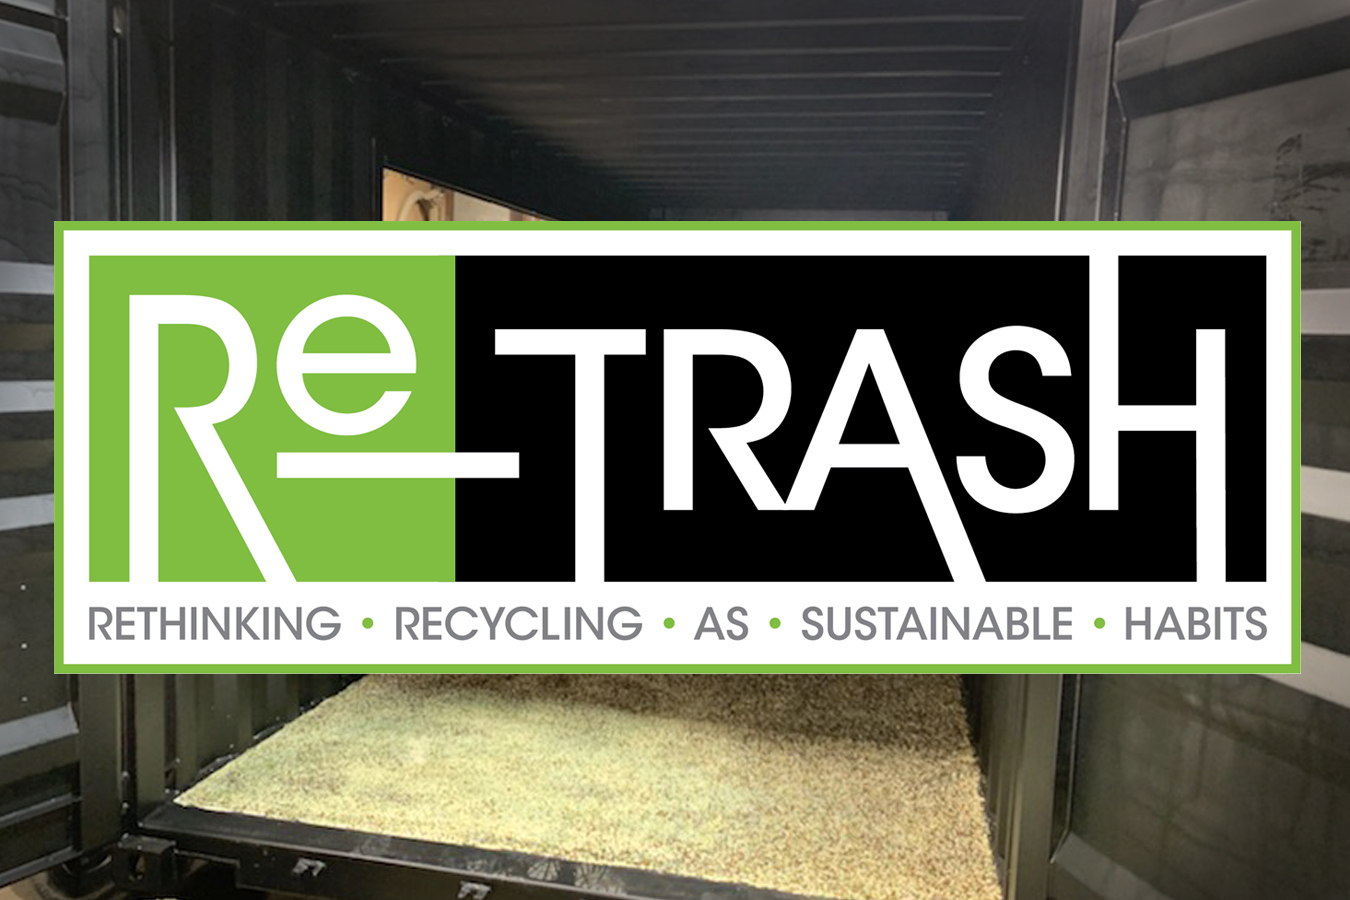 Project Re-TRASH recycling, environment, sustainability